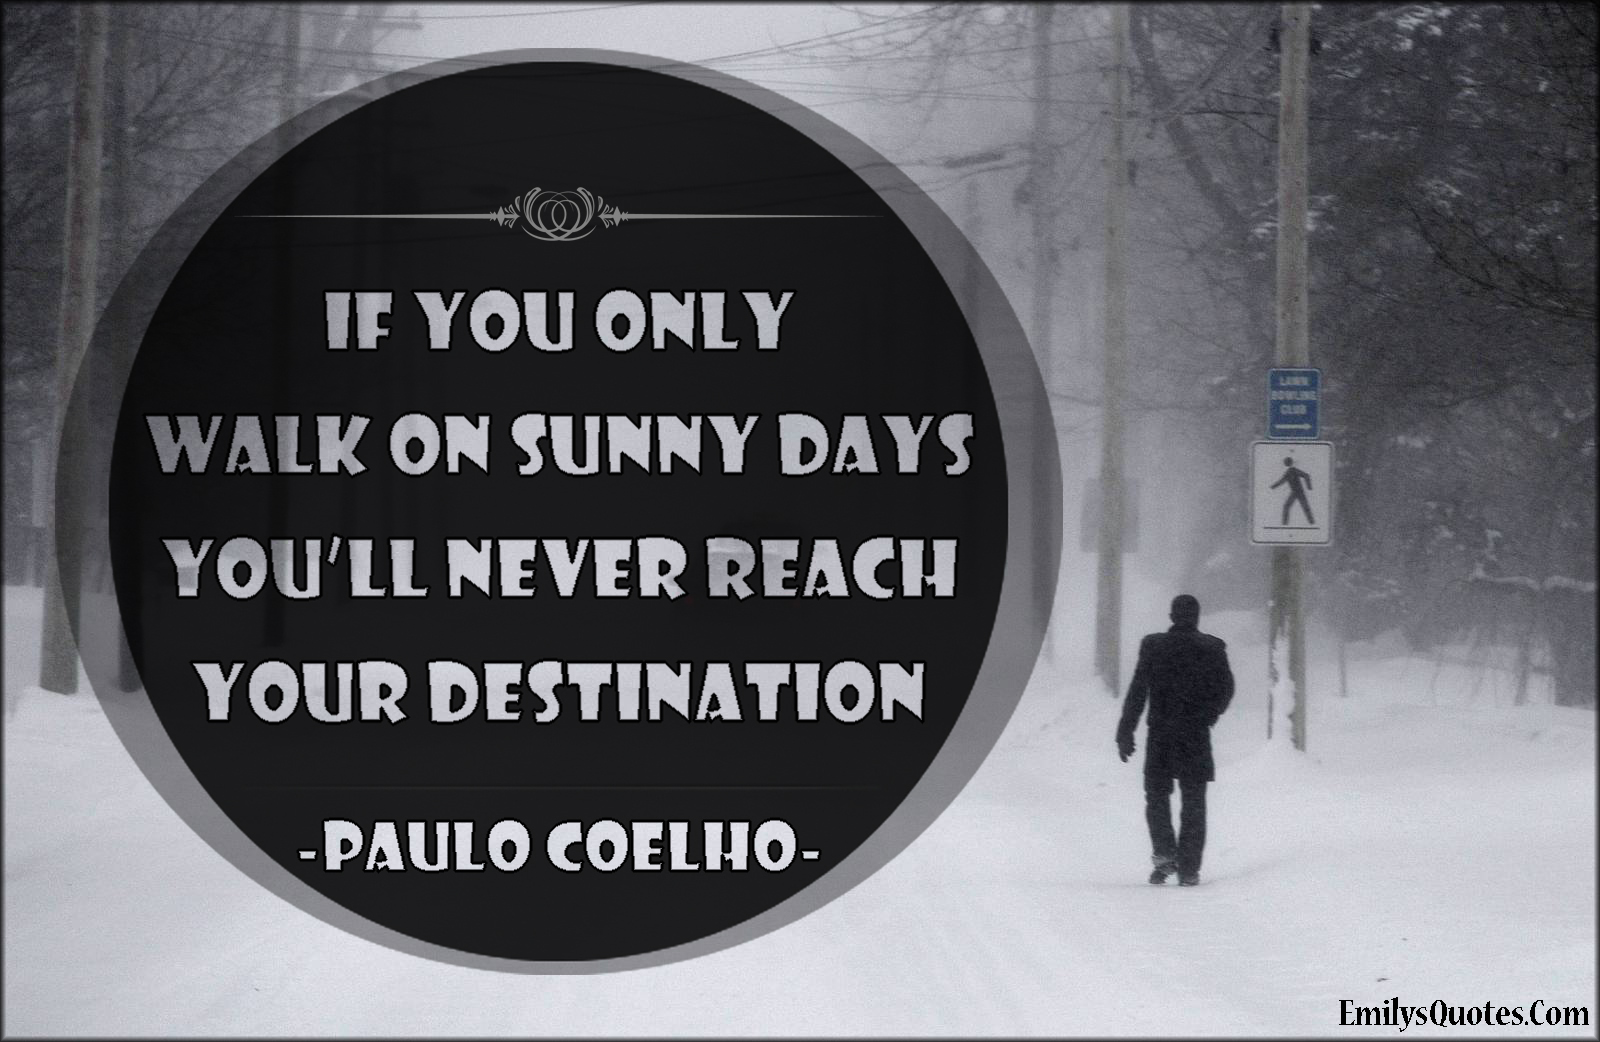 EmilysQuotes.Com - motivational, inspirational, choice, consequences, Paulo Coelho, intelligence, destination